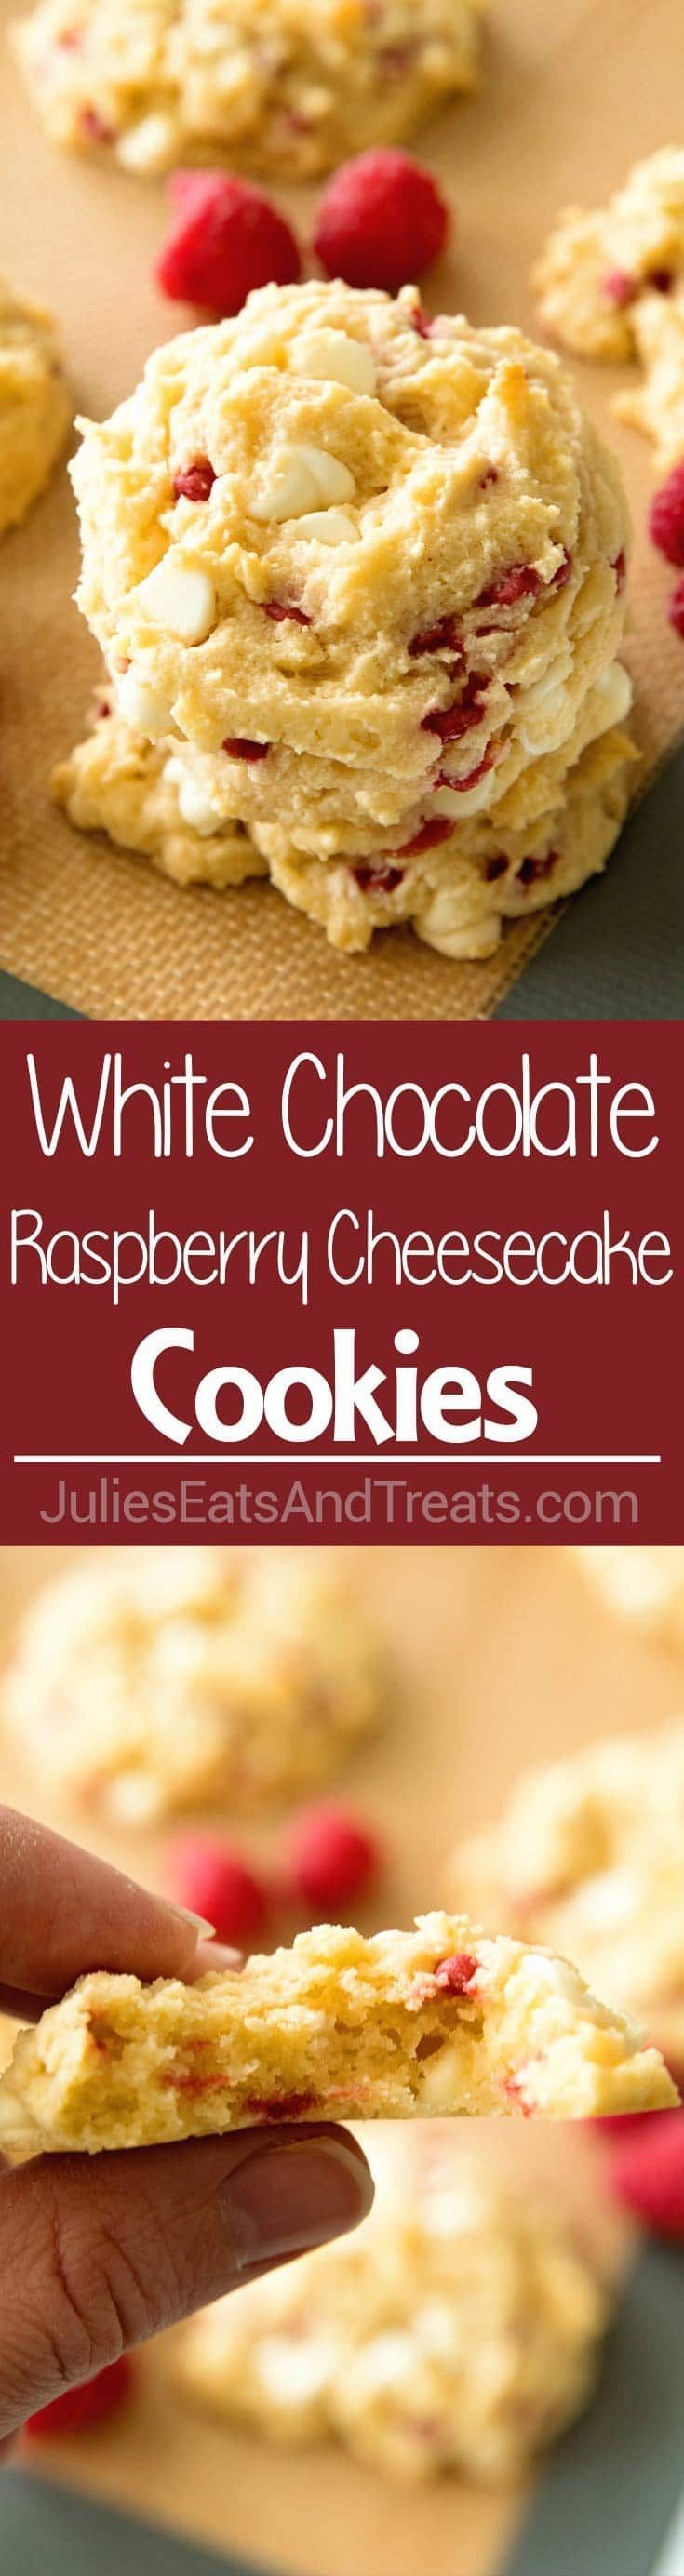 White Chocolate Raspberry Cheesecake Cookies ~ Copycat Subway cookies but even better! Now You Can Make Your Favorite Cookie at Home!